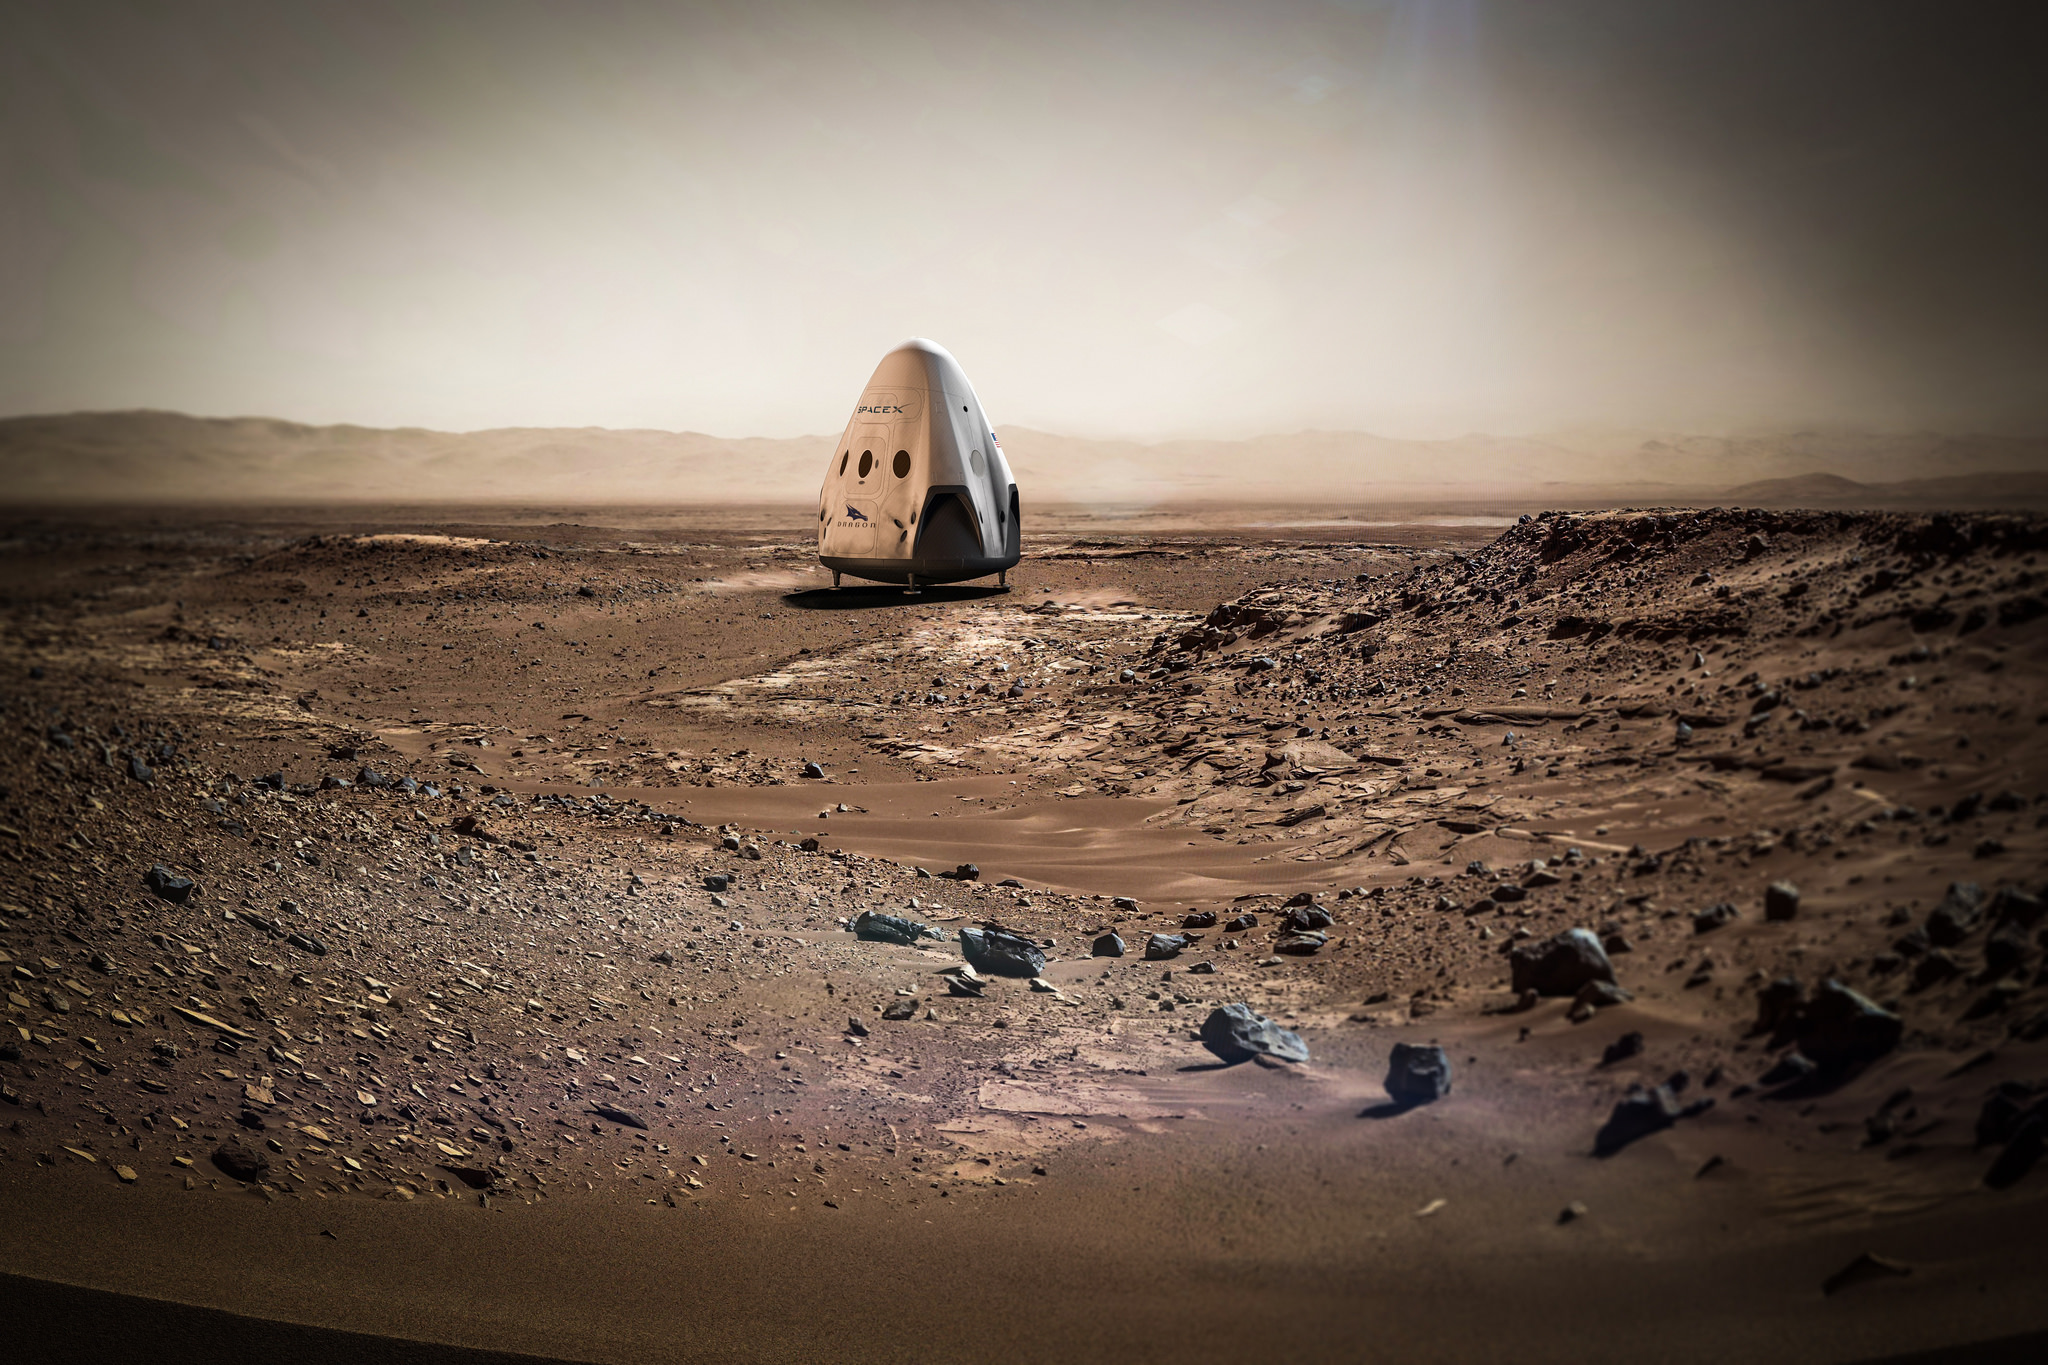 SpaceX's Red Dragon: A Private Mars Mission Plan in Pictures